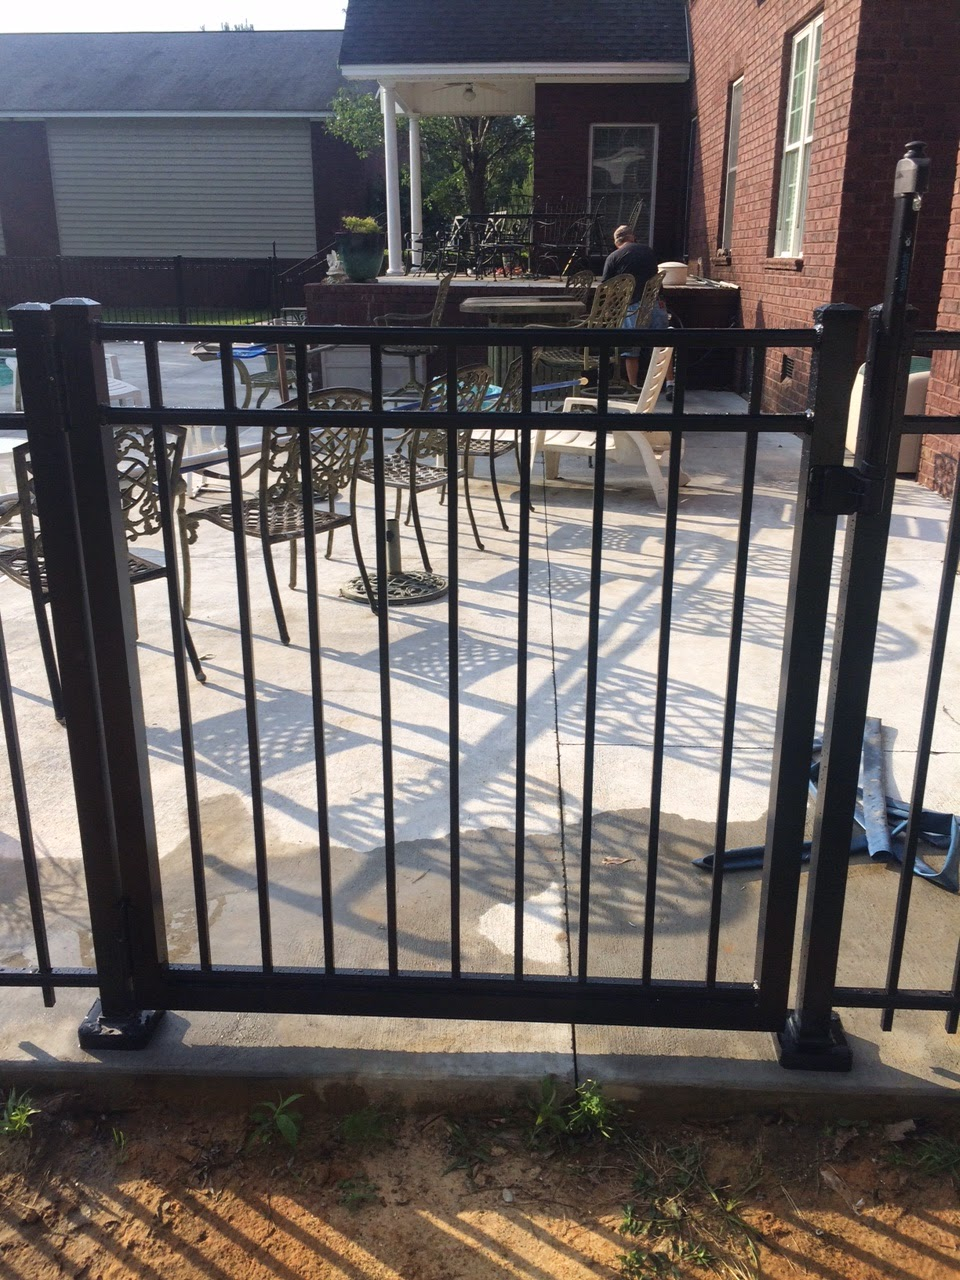 Town & Country Fences, LLC